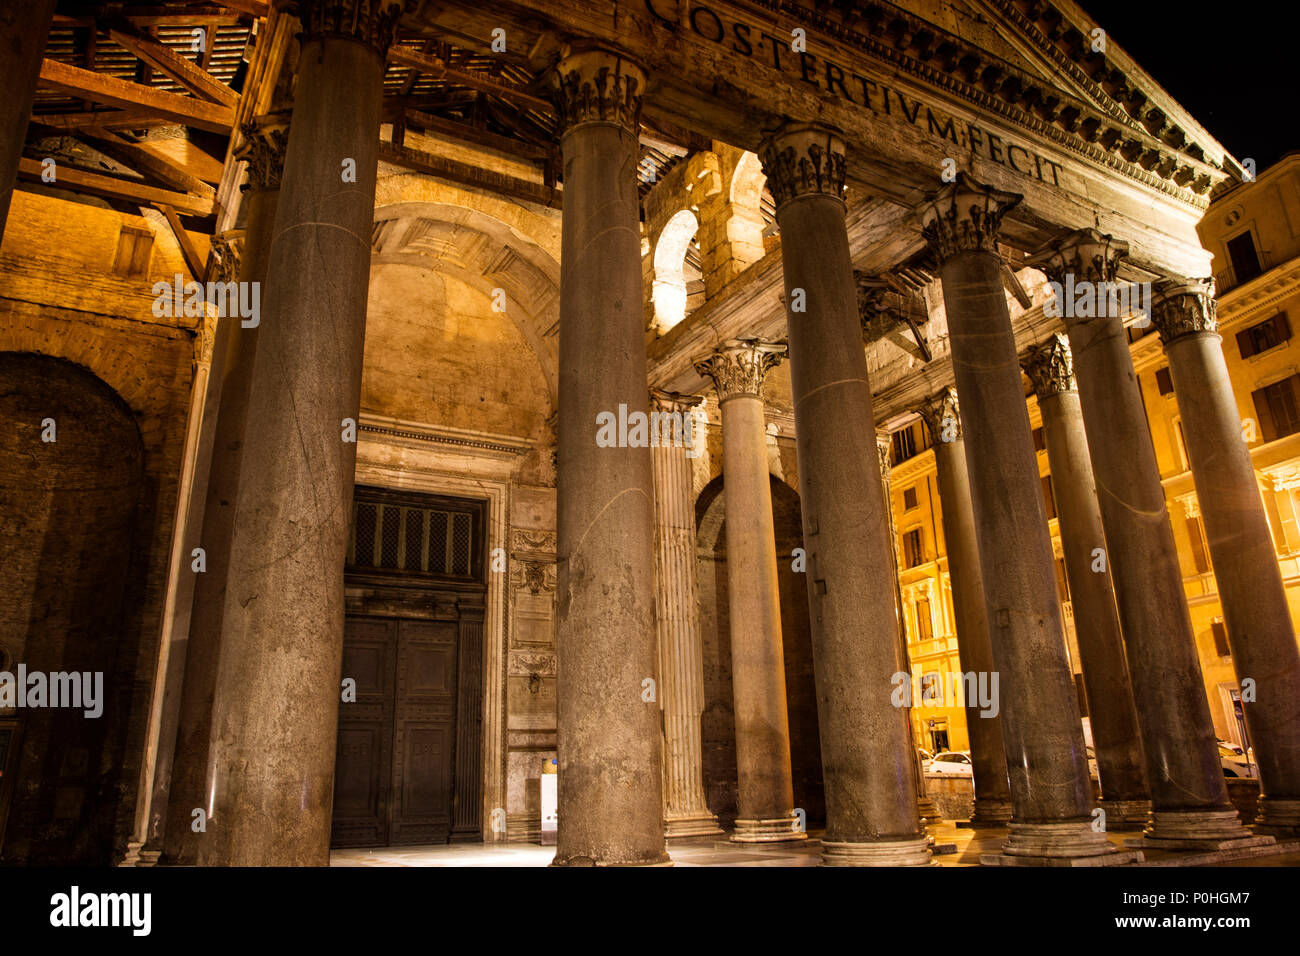 A nighttime visit to the Pantheon in Rome, Italy. - Stock Image